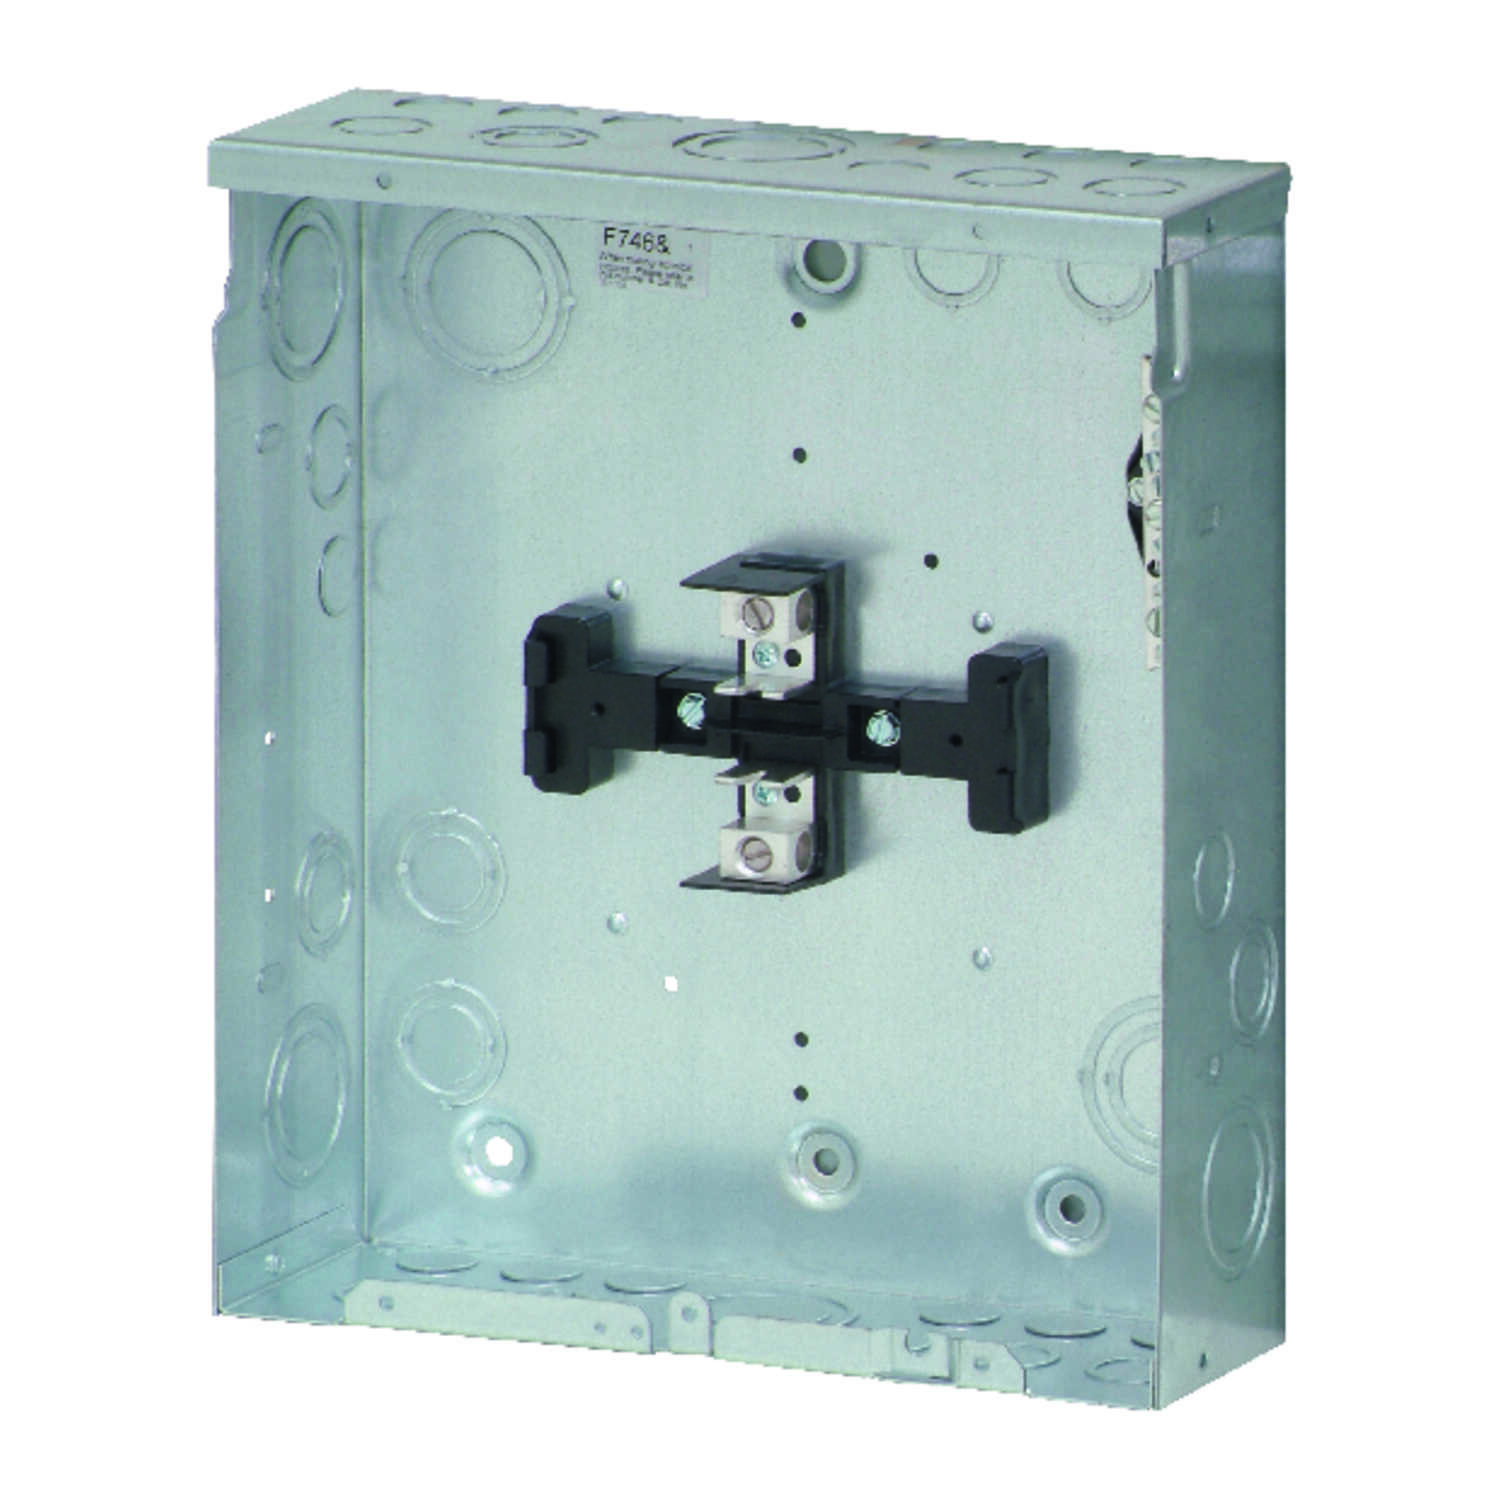 Eaton  Cutler-Hammer  125 amps 120/240 volt 4 space 8 circuits Surface Mount  Main Lug Load Center